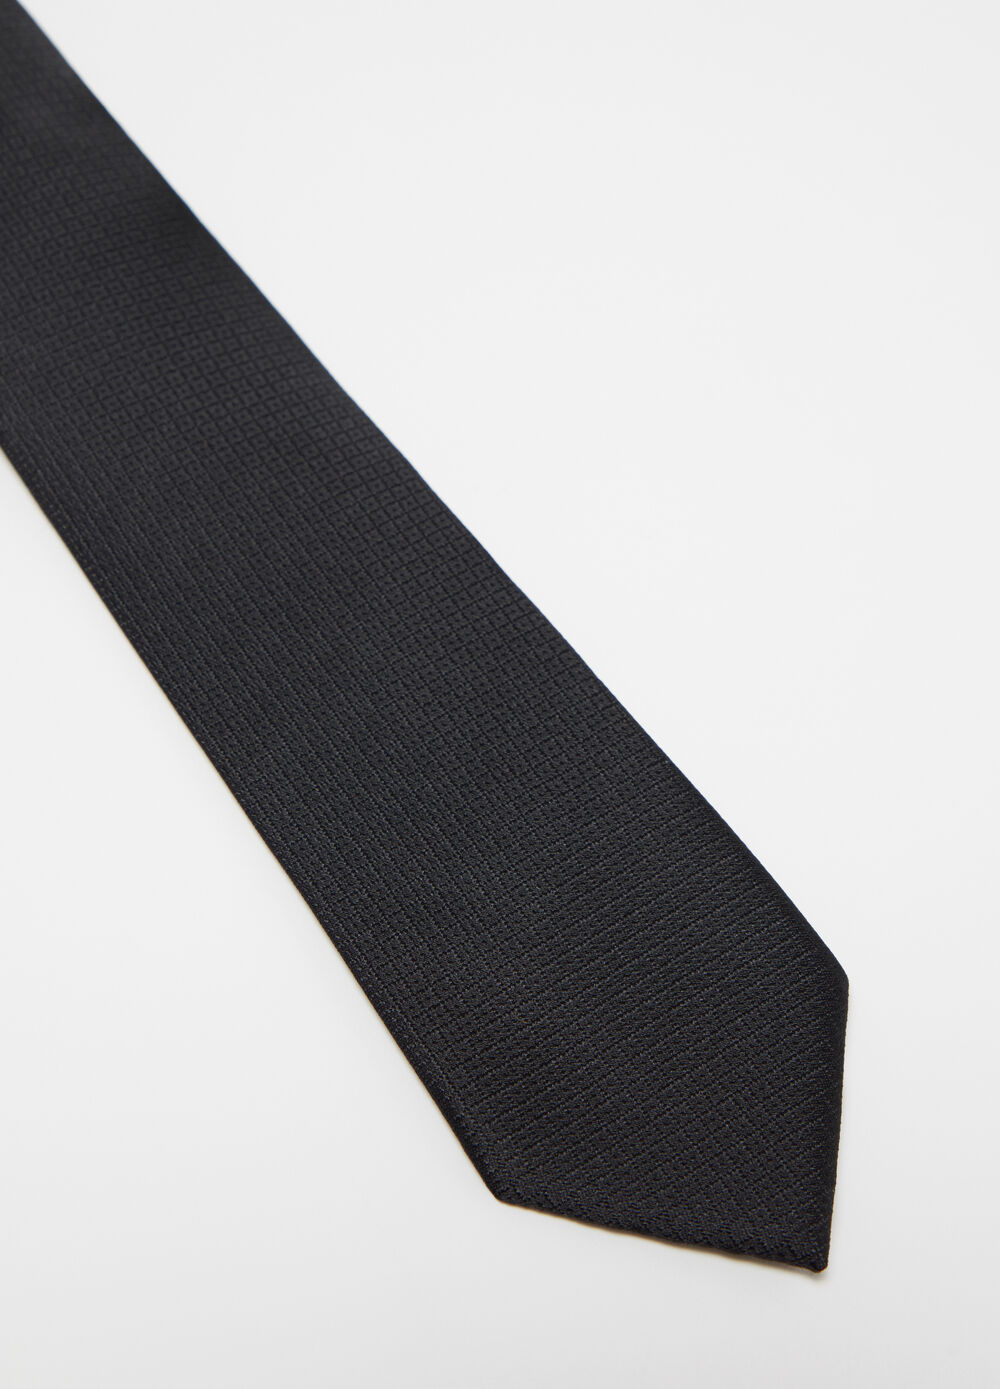 Solid colour tie with geometric weave